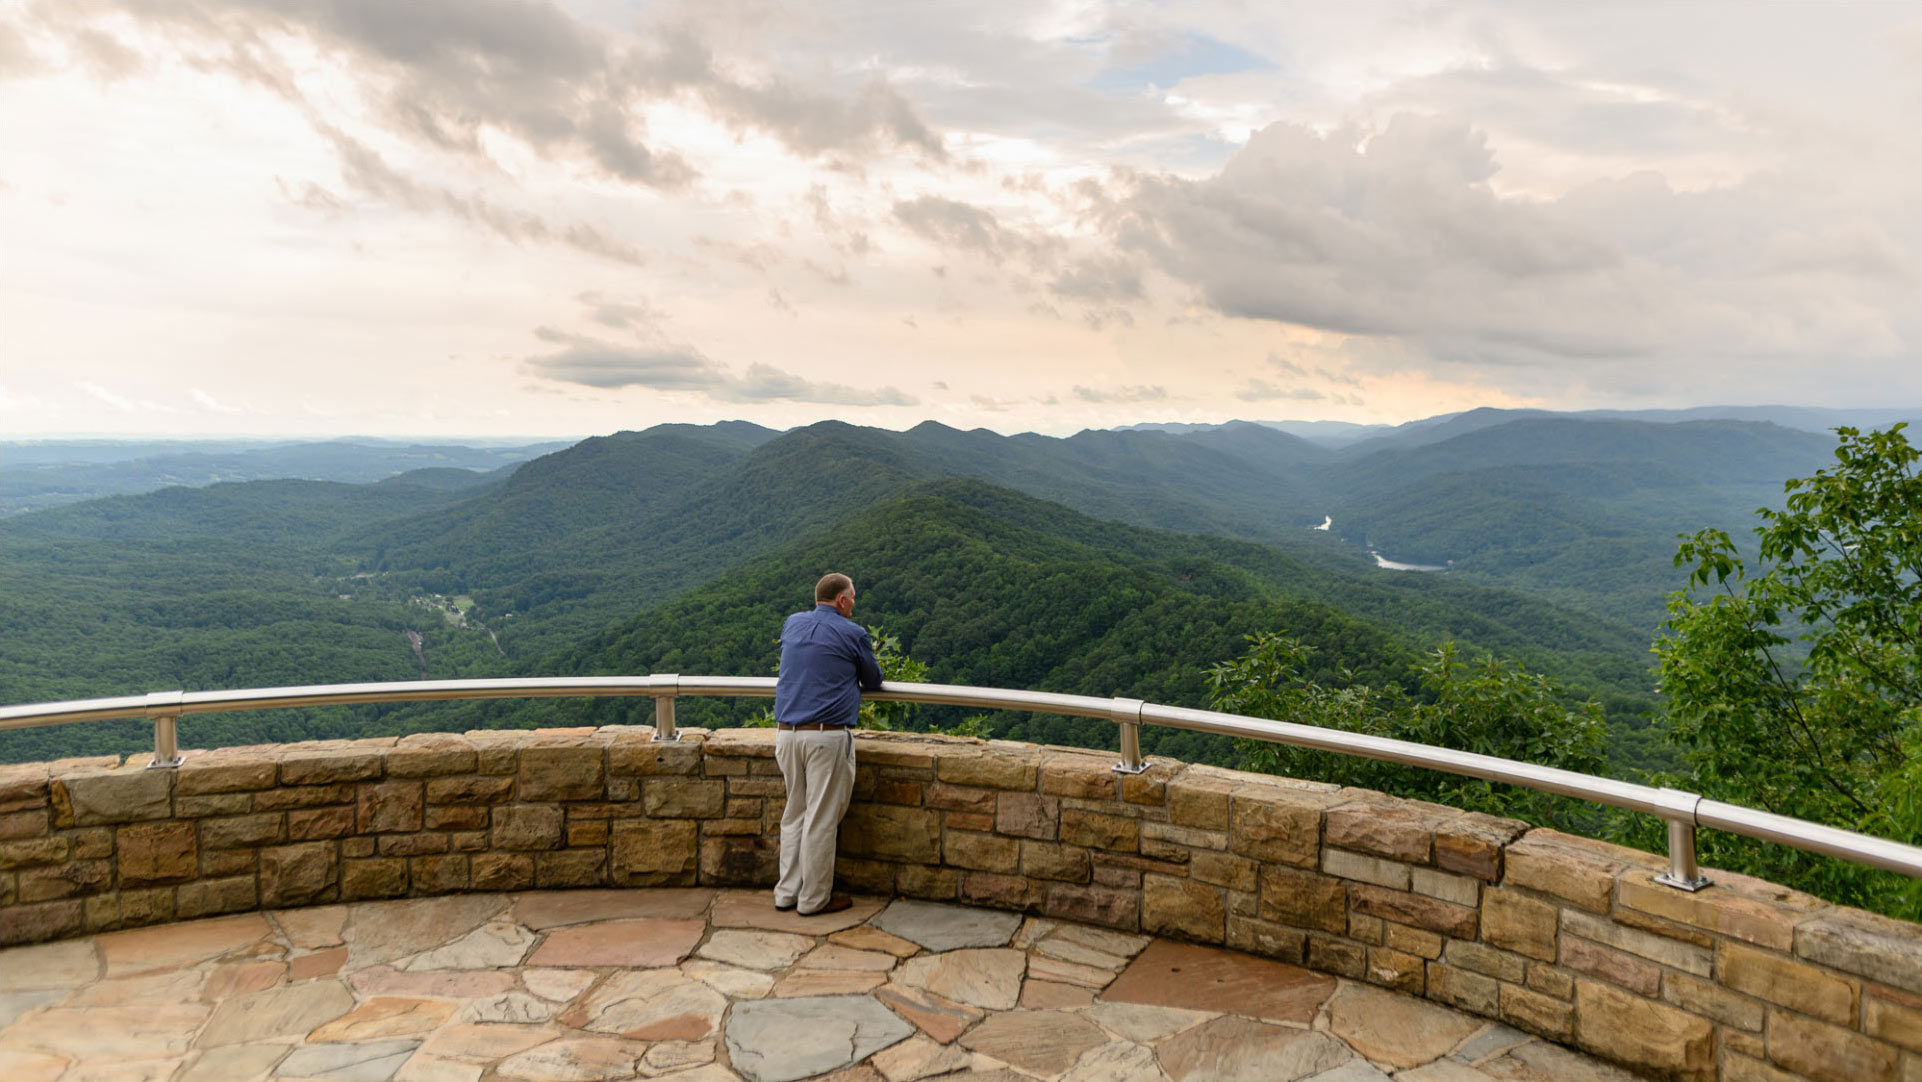 A landscape photo of Michael with his back facing the camera as he stands on a gated ledge that looks out over mountains and trees.